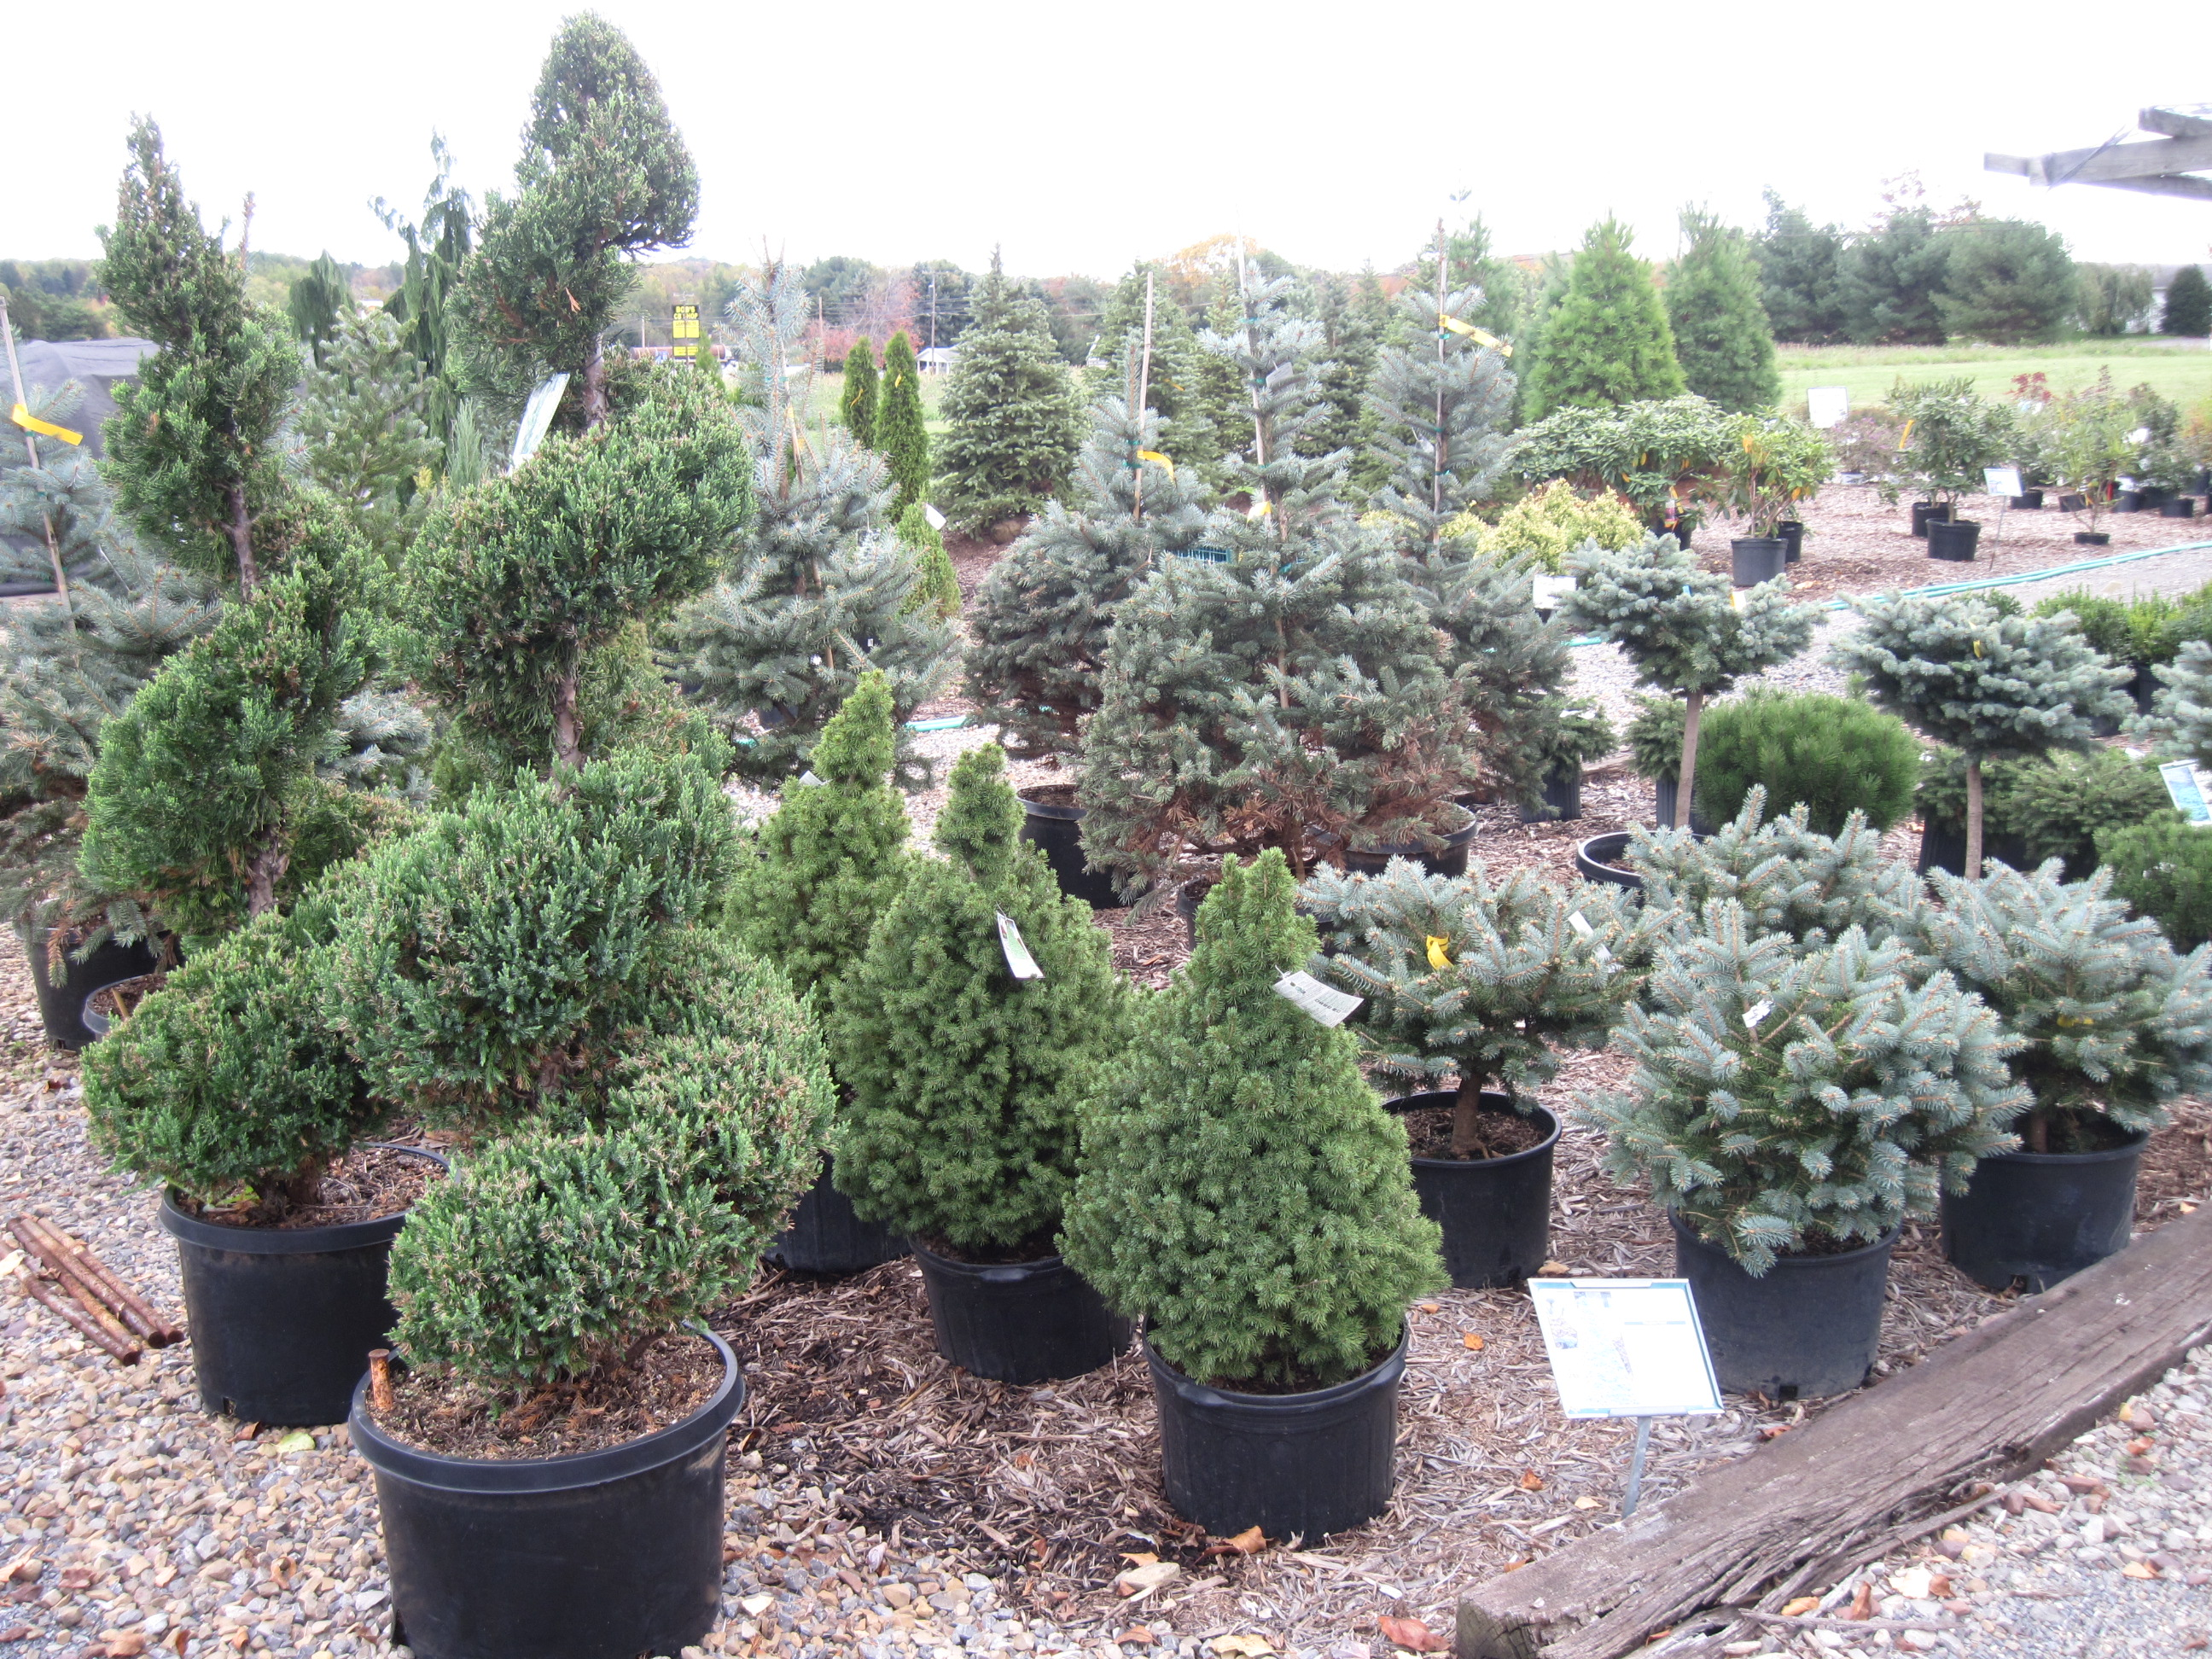 Evergreens For Sale In Clarion County, Pa.